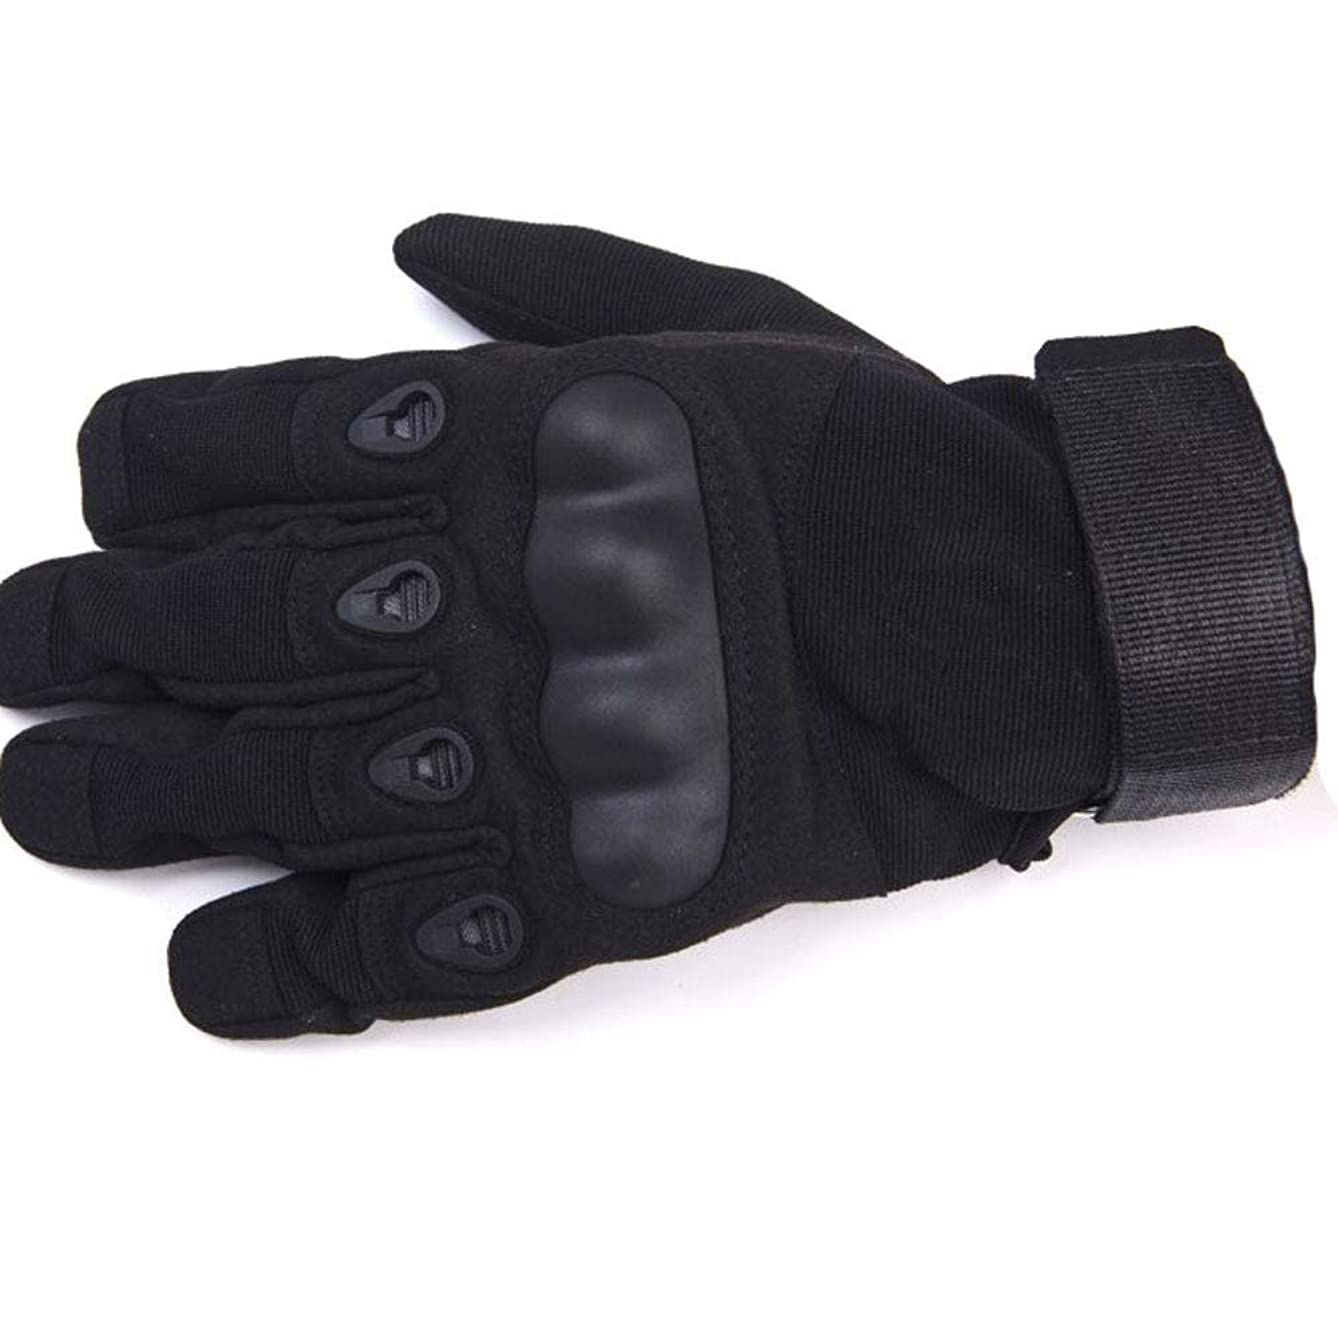 ZZKJTANGYM Motorbike Gloves, Motorcycle Riding Gloves, Special Forces Tactics Full Finger Gloves Men, Fighting Sports Riding Non-Slip Wear Training, Breathable Sweat,Black-XL